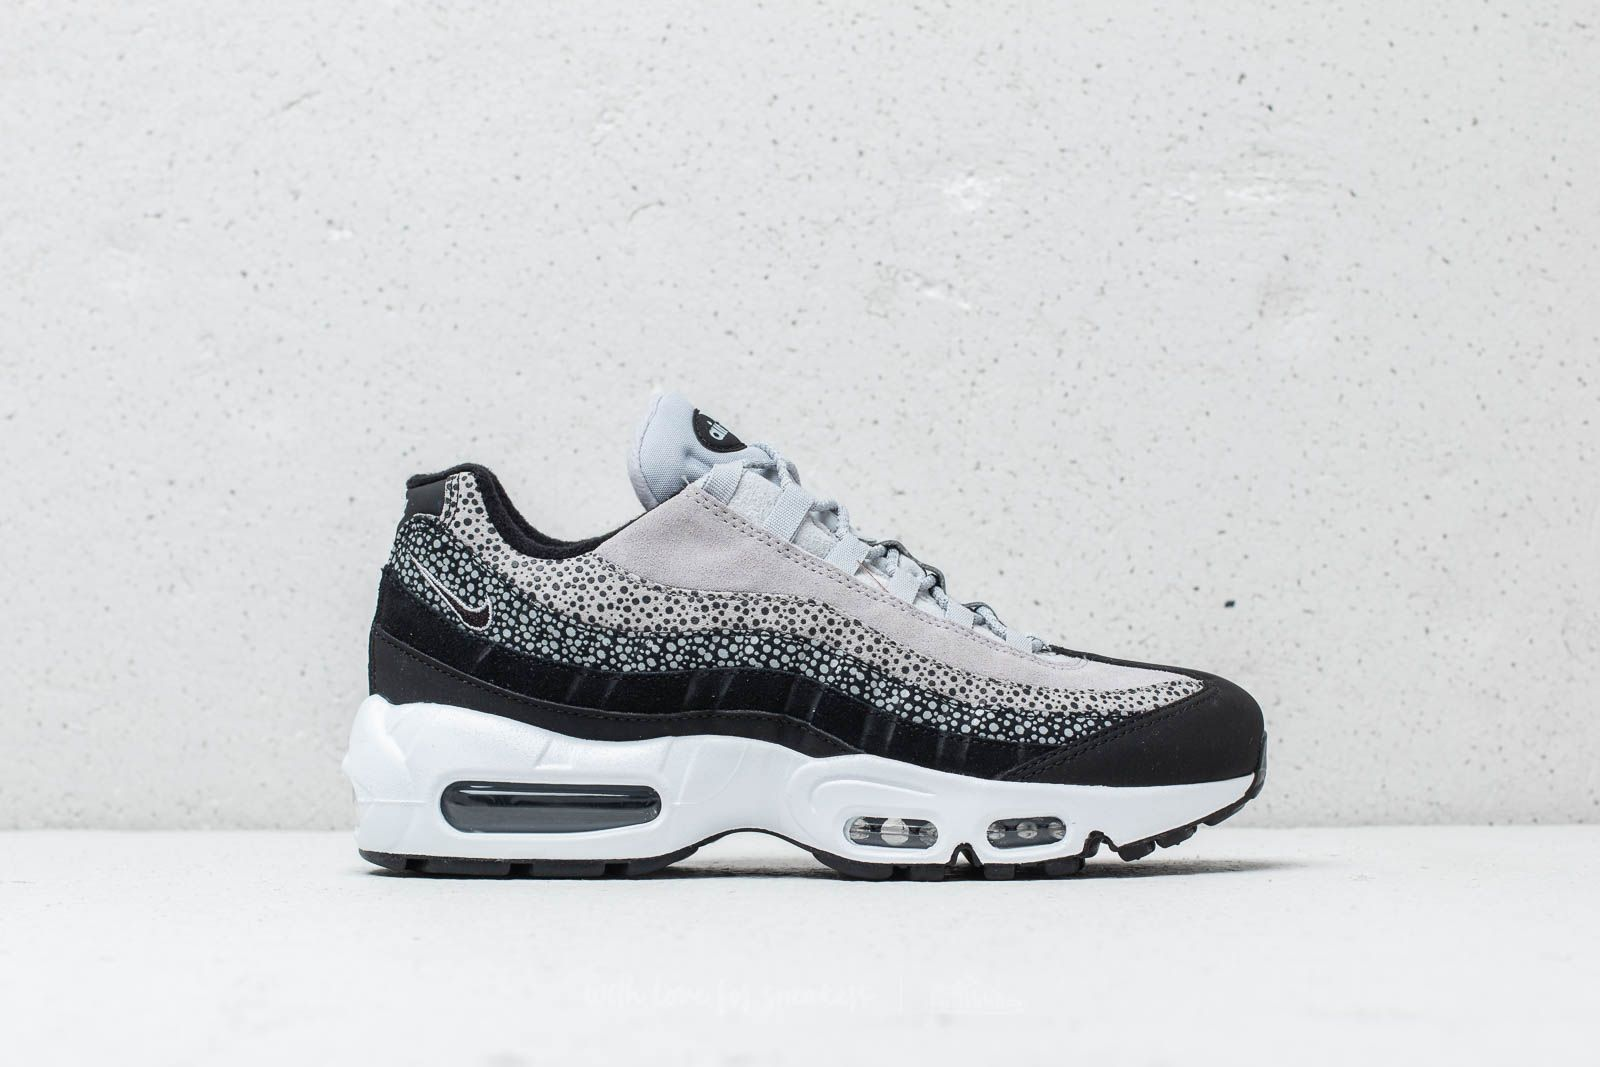 detailed look 296f0 a3ba3 Nike Wmns Air Max 95 Premium Black  Black-Wolf Grey-White at a